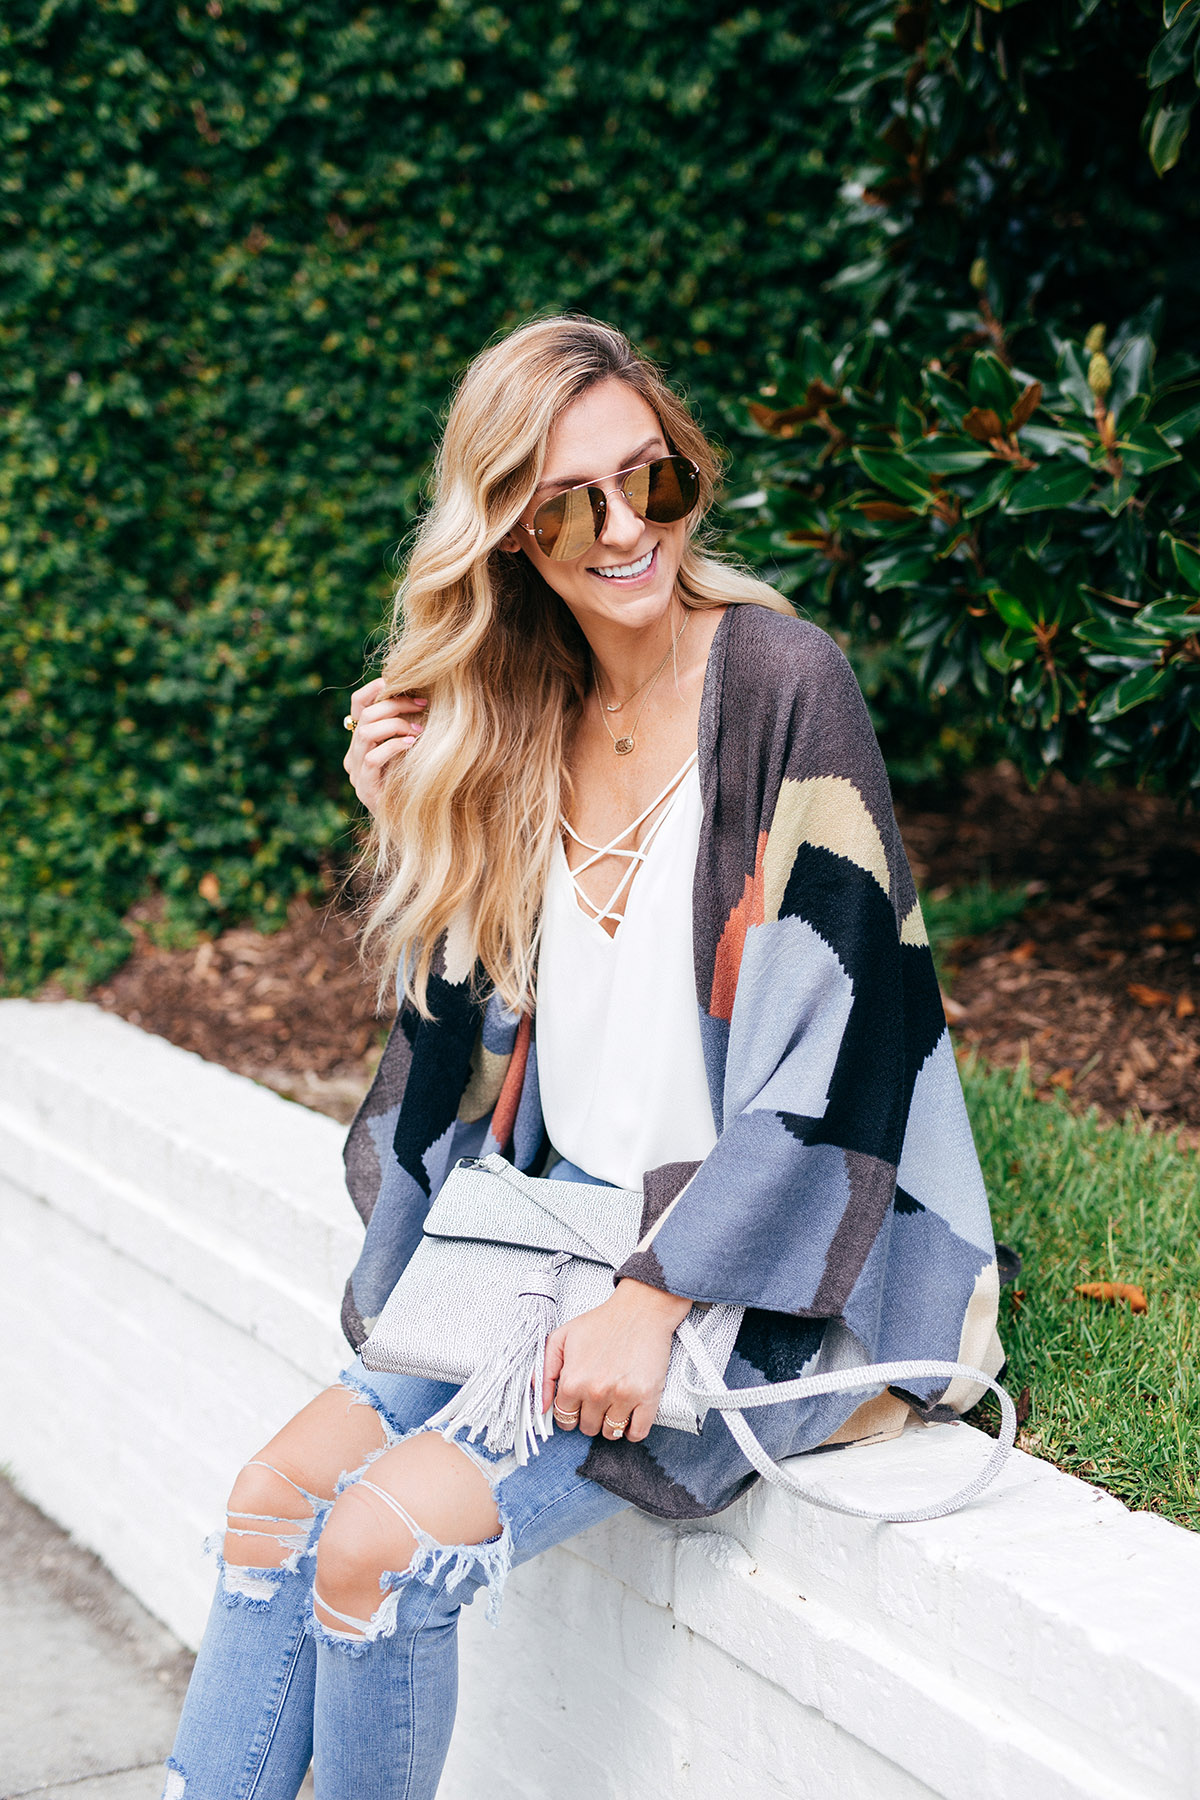 Late Summer Outfit Ideas | Patterned Kimono and Camisole